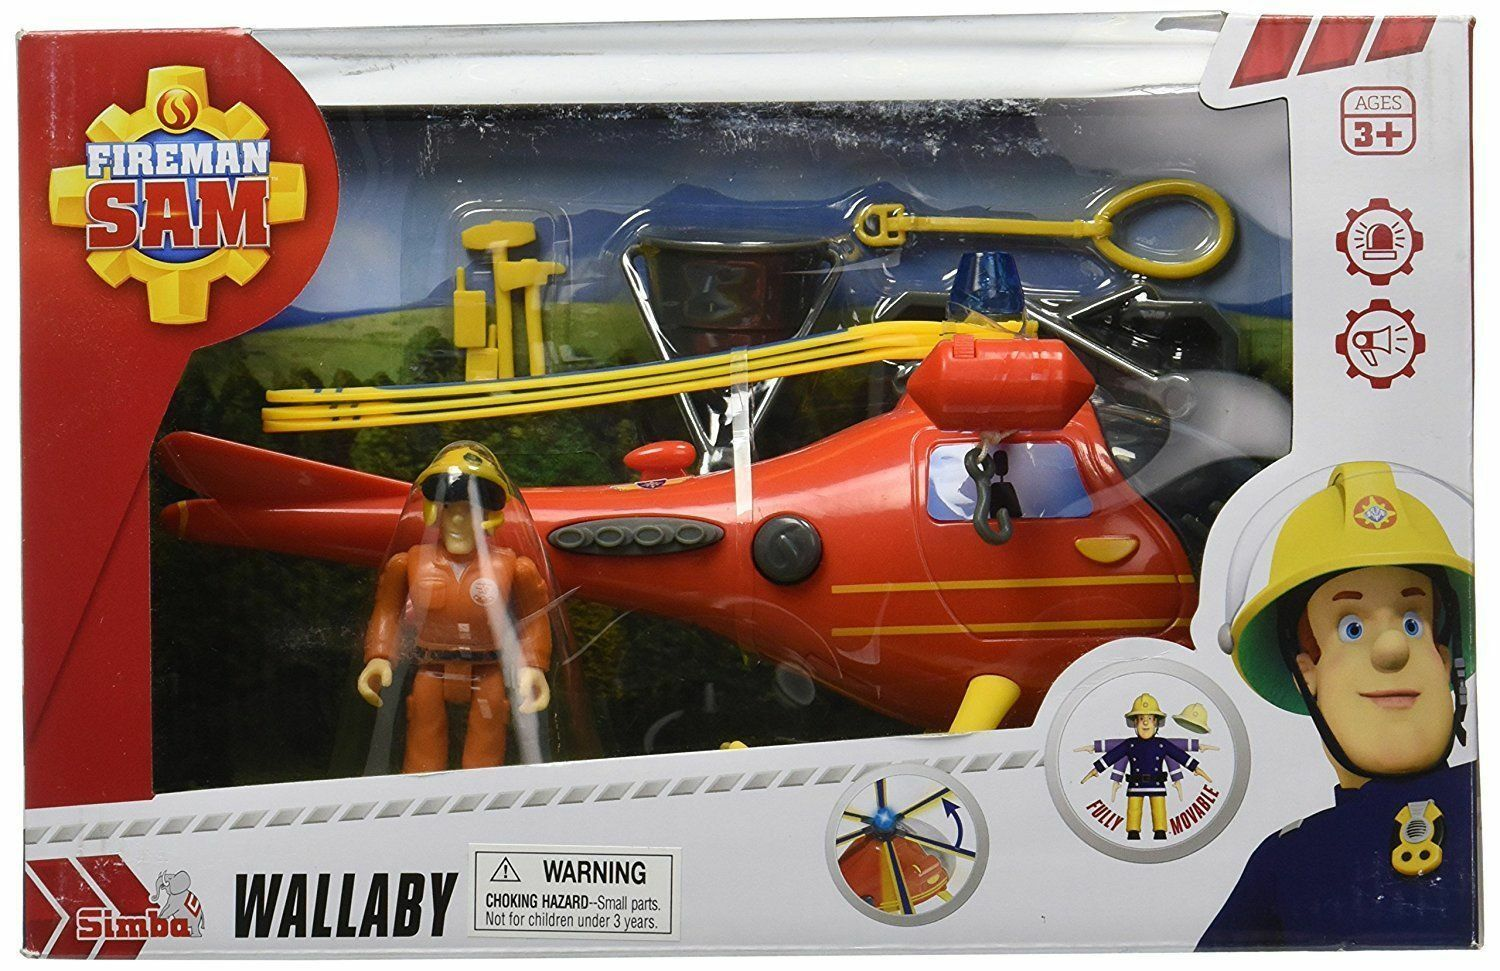 Fireman Sam Mountain Rescue Helicopter Wallaby Vehicle Big Giant with figure